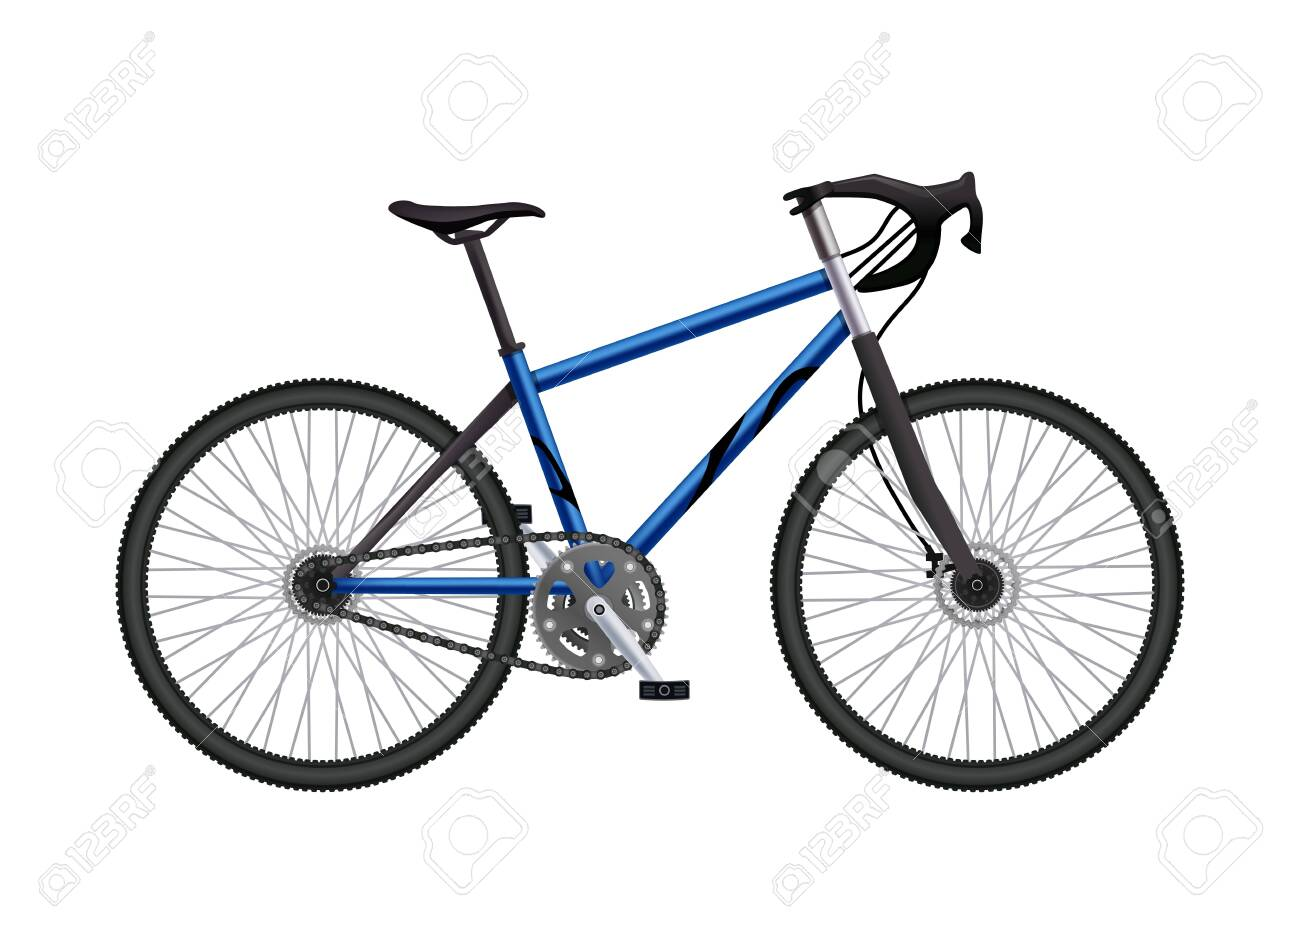 Realistic bicycle parts composition with isolated image of built-up mtb hardtail bike on blank background vector illustration - 128161176